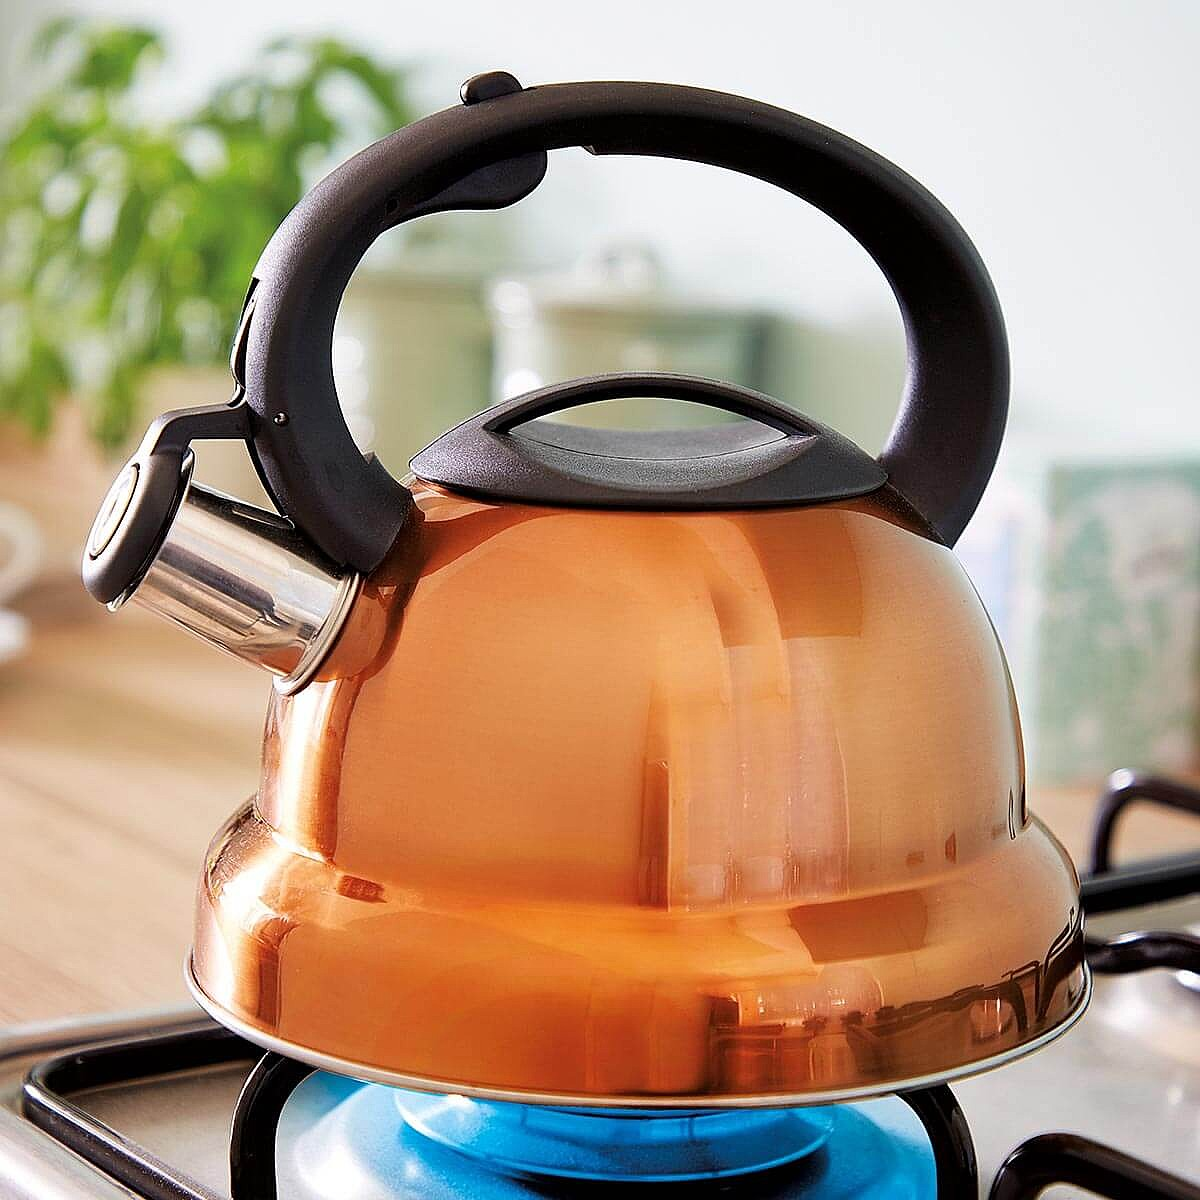 Copper King Whistling Kettle by Coopers of Stortford